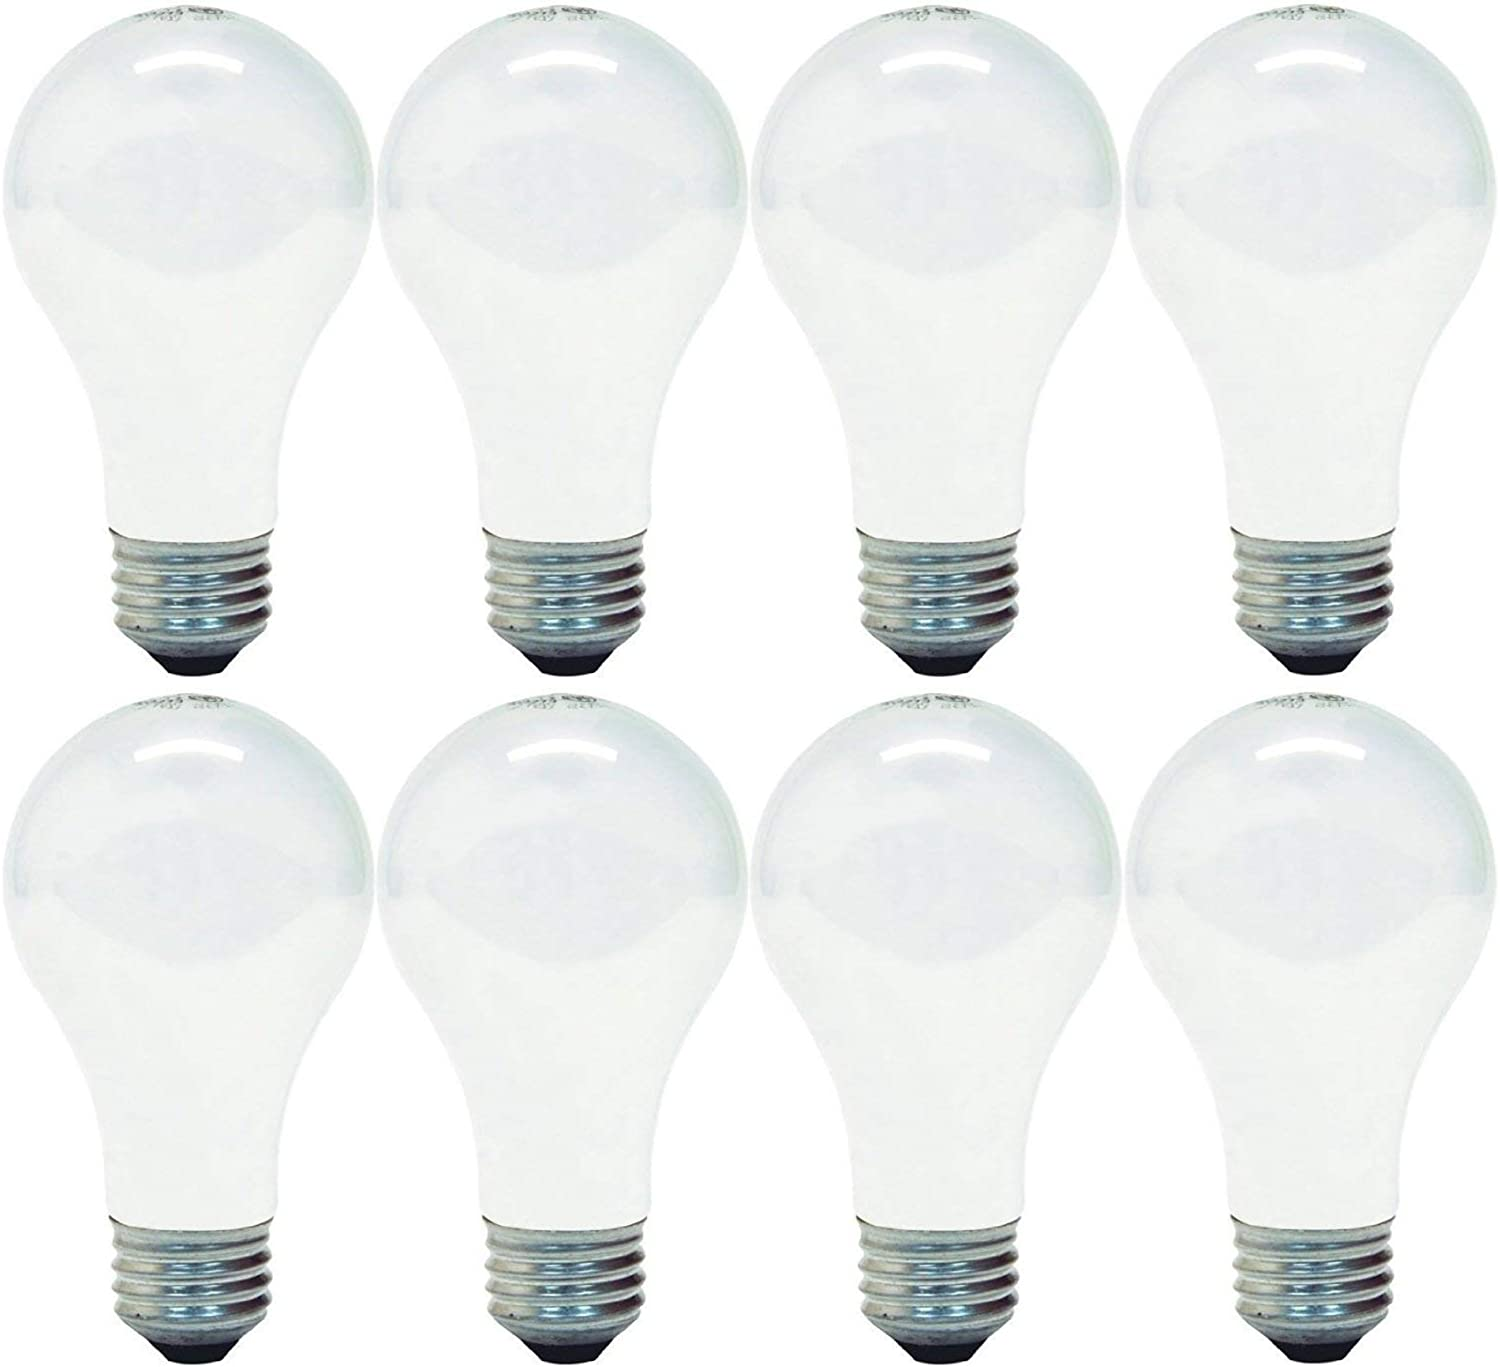 GE 714270019272 66249 Soft White 100 Replacement uses only 72 watts, 1270-Lumen A19 Light Bulb with Medium Base, 8-Pack